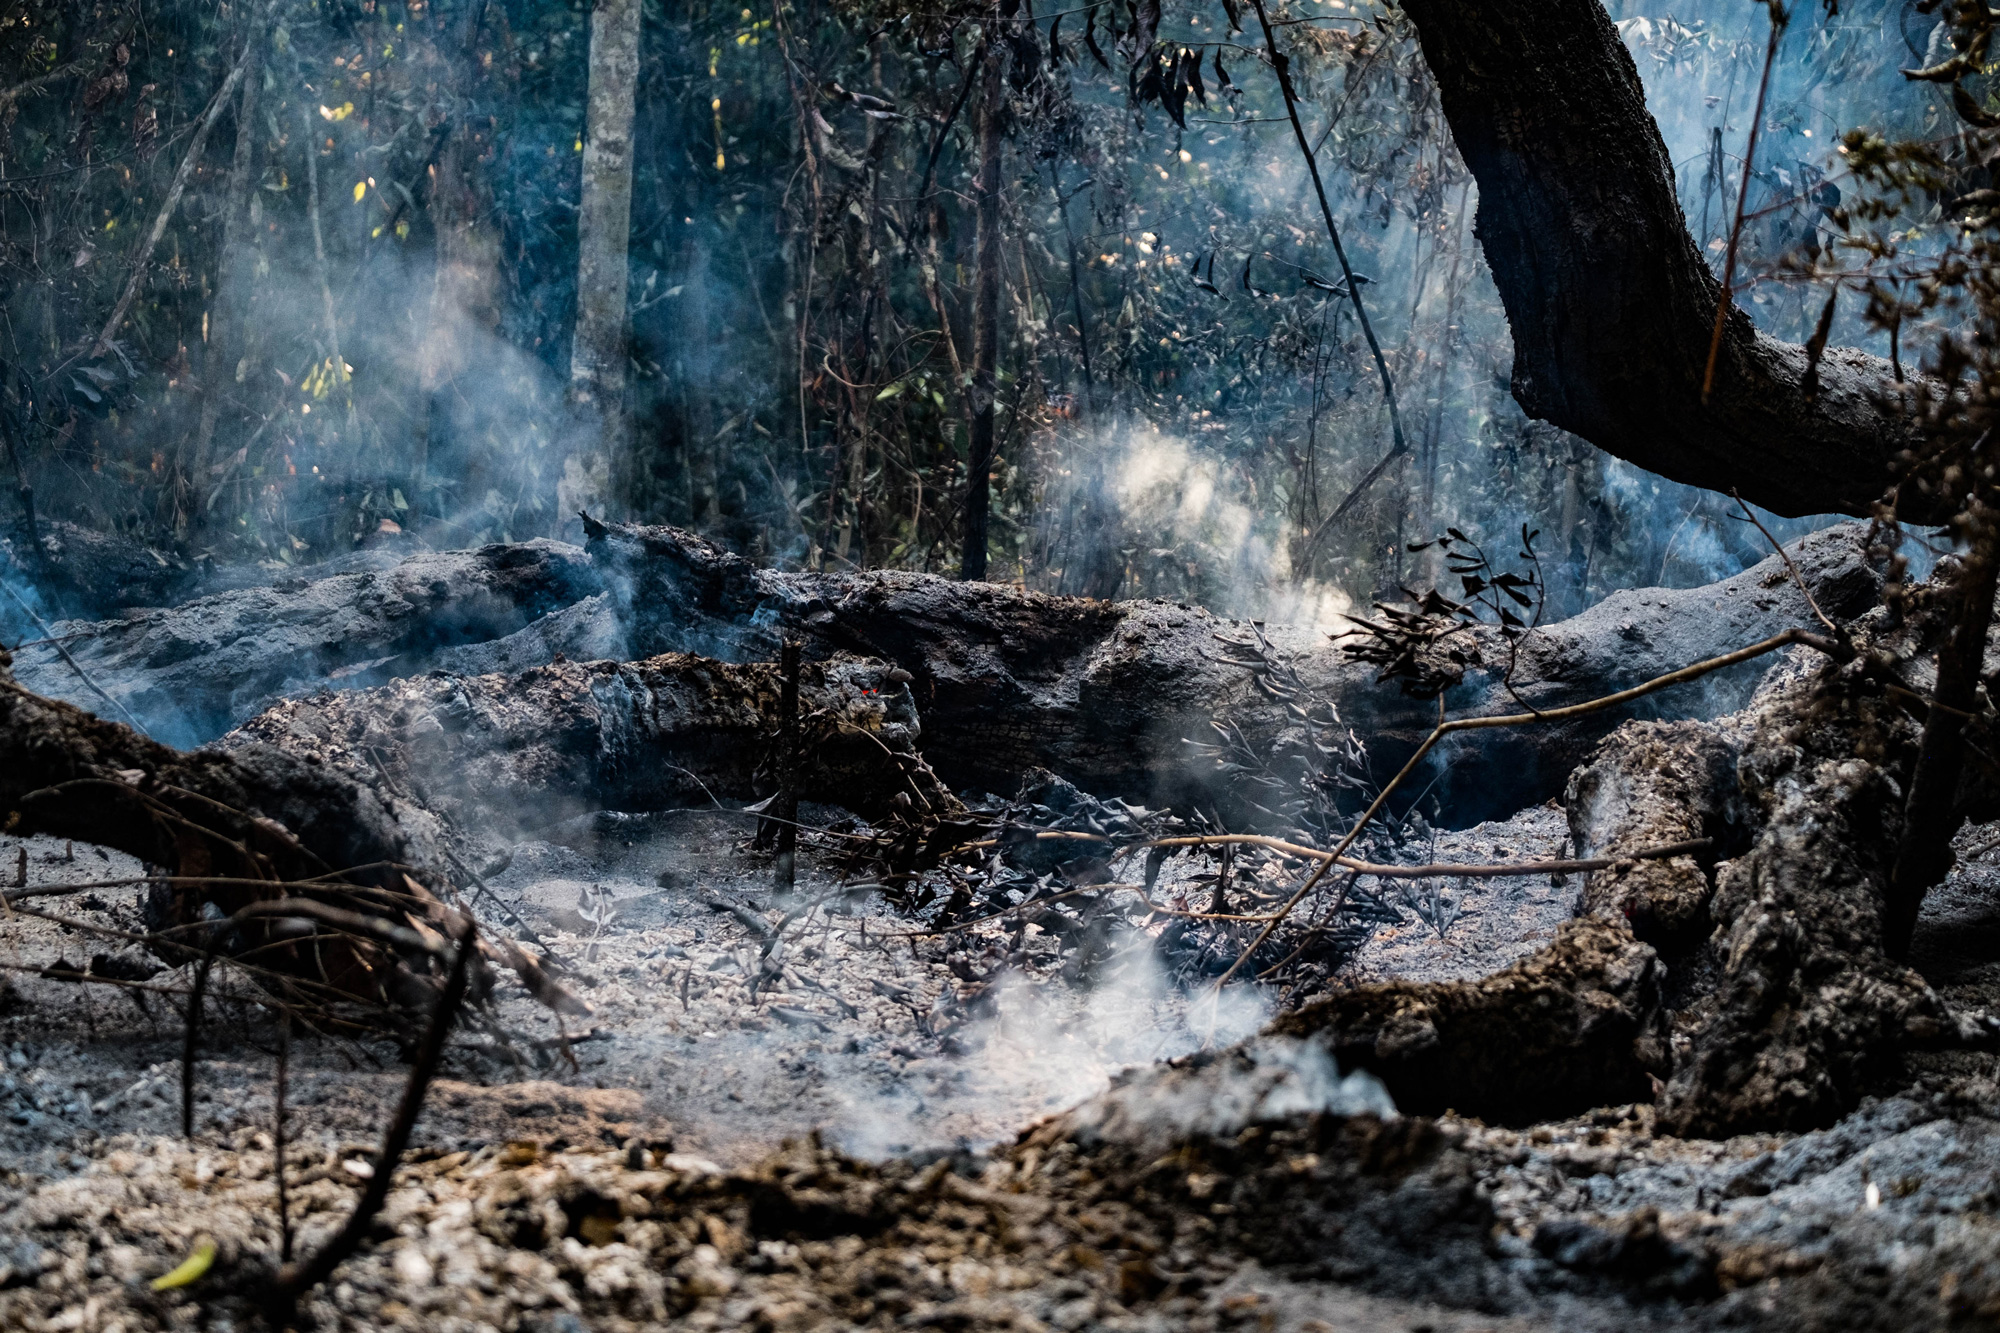 The smoldering remains of burned trees in the Amazon rainforest